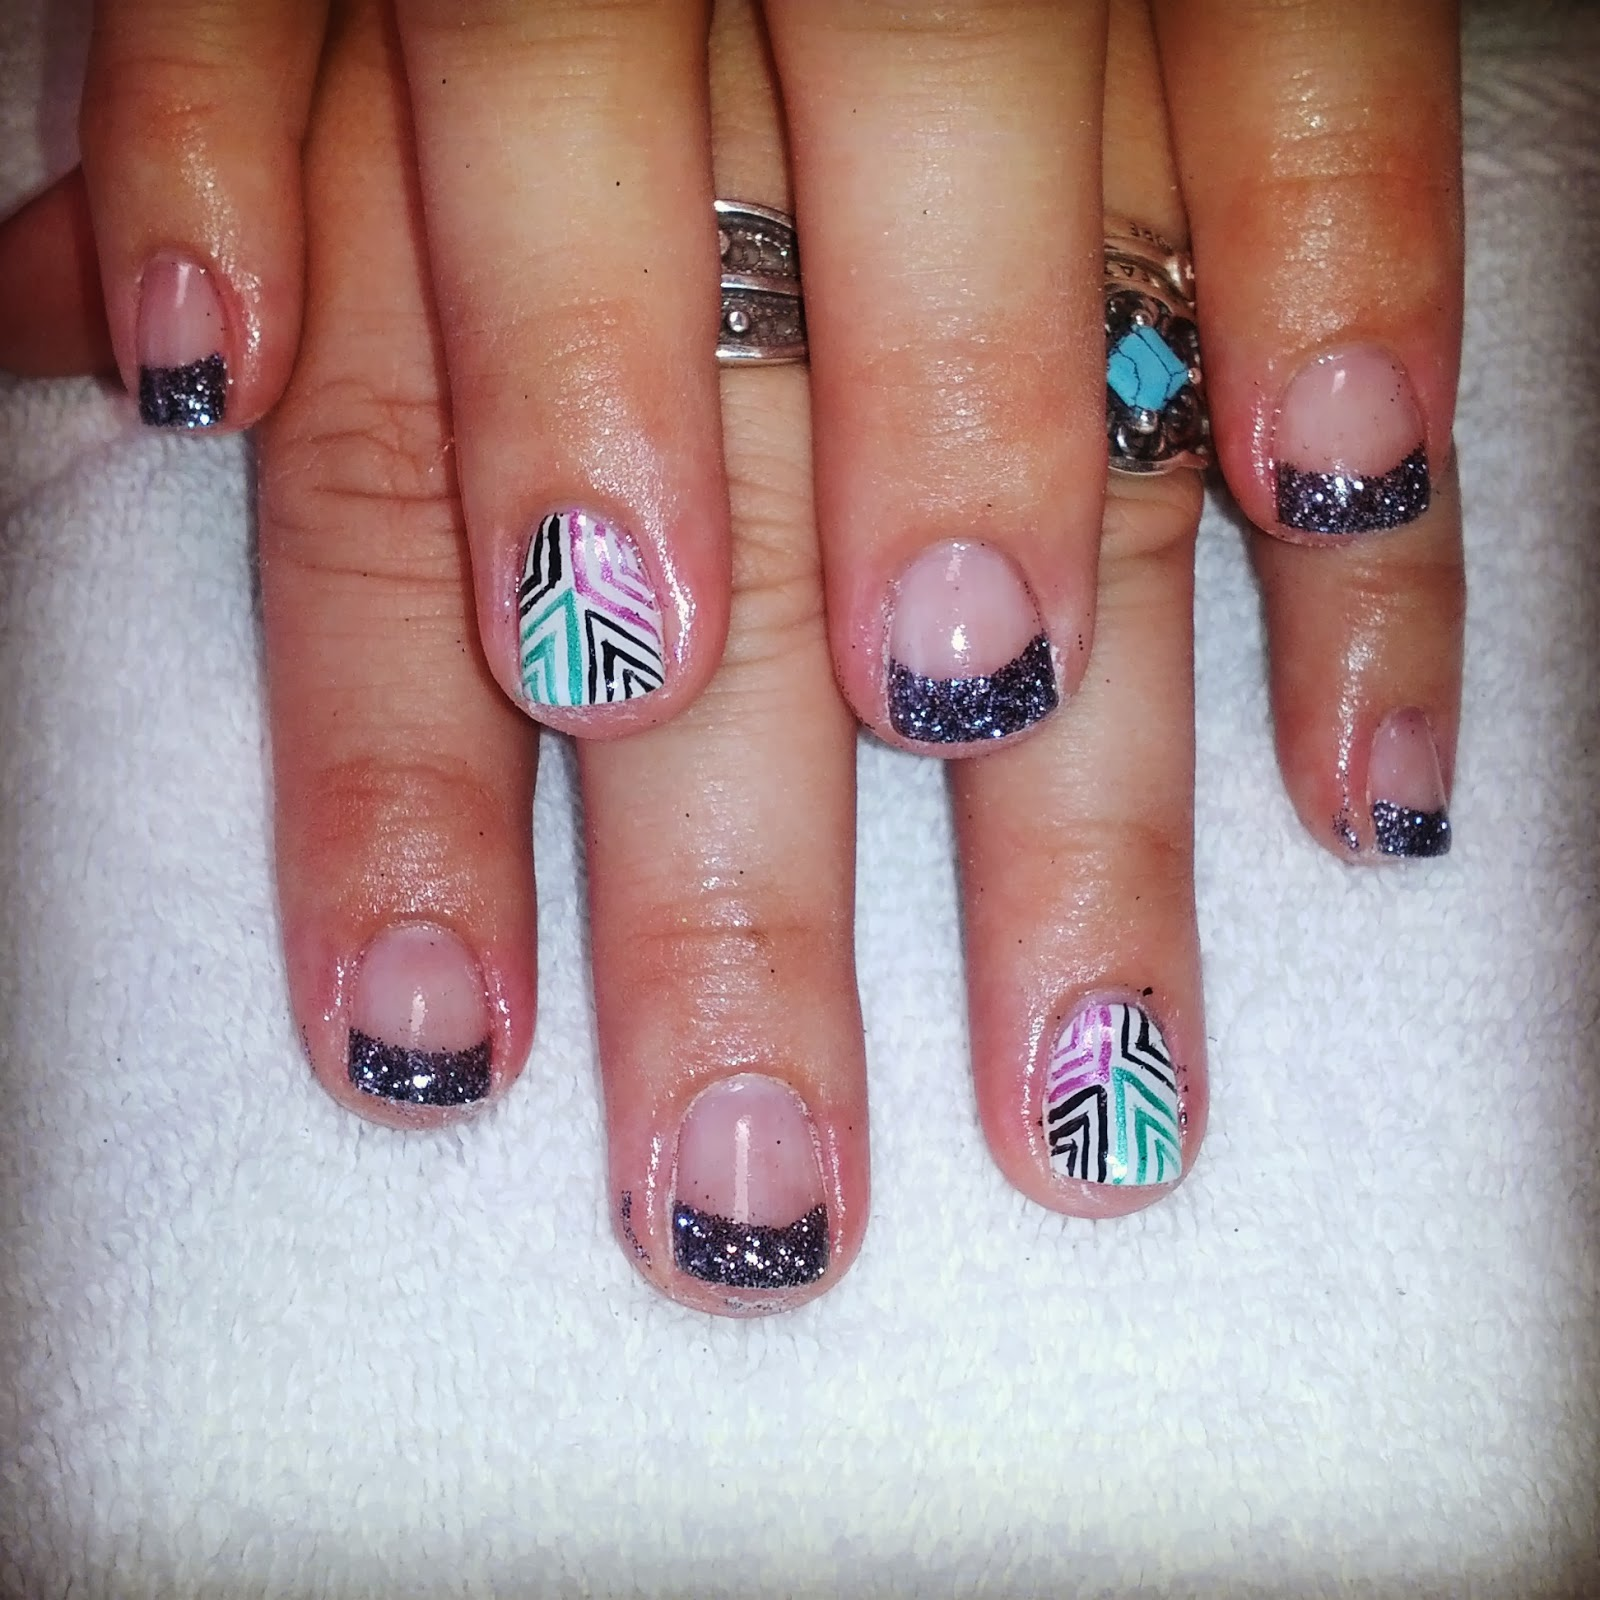 Gel Overlay Nails in st George and Washington ut | Gel Nails and ...